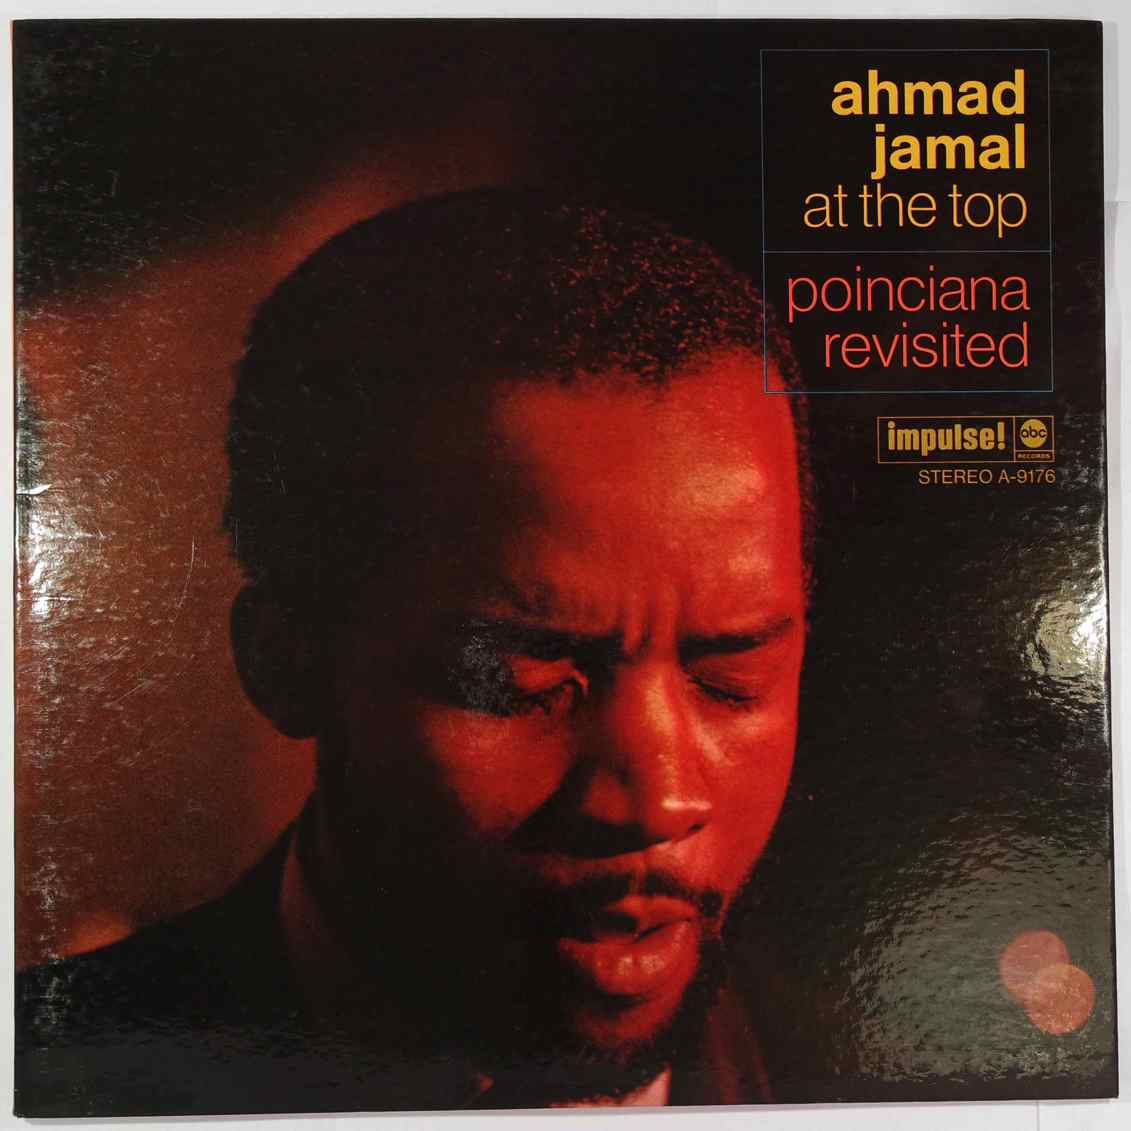 AHMAD JAMAL - At The Top (Poinciana Revisited) - LP